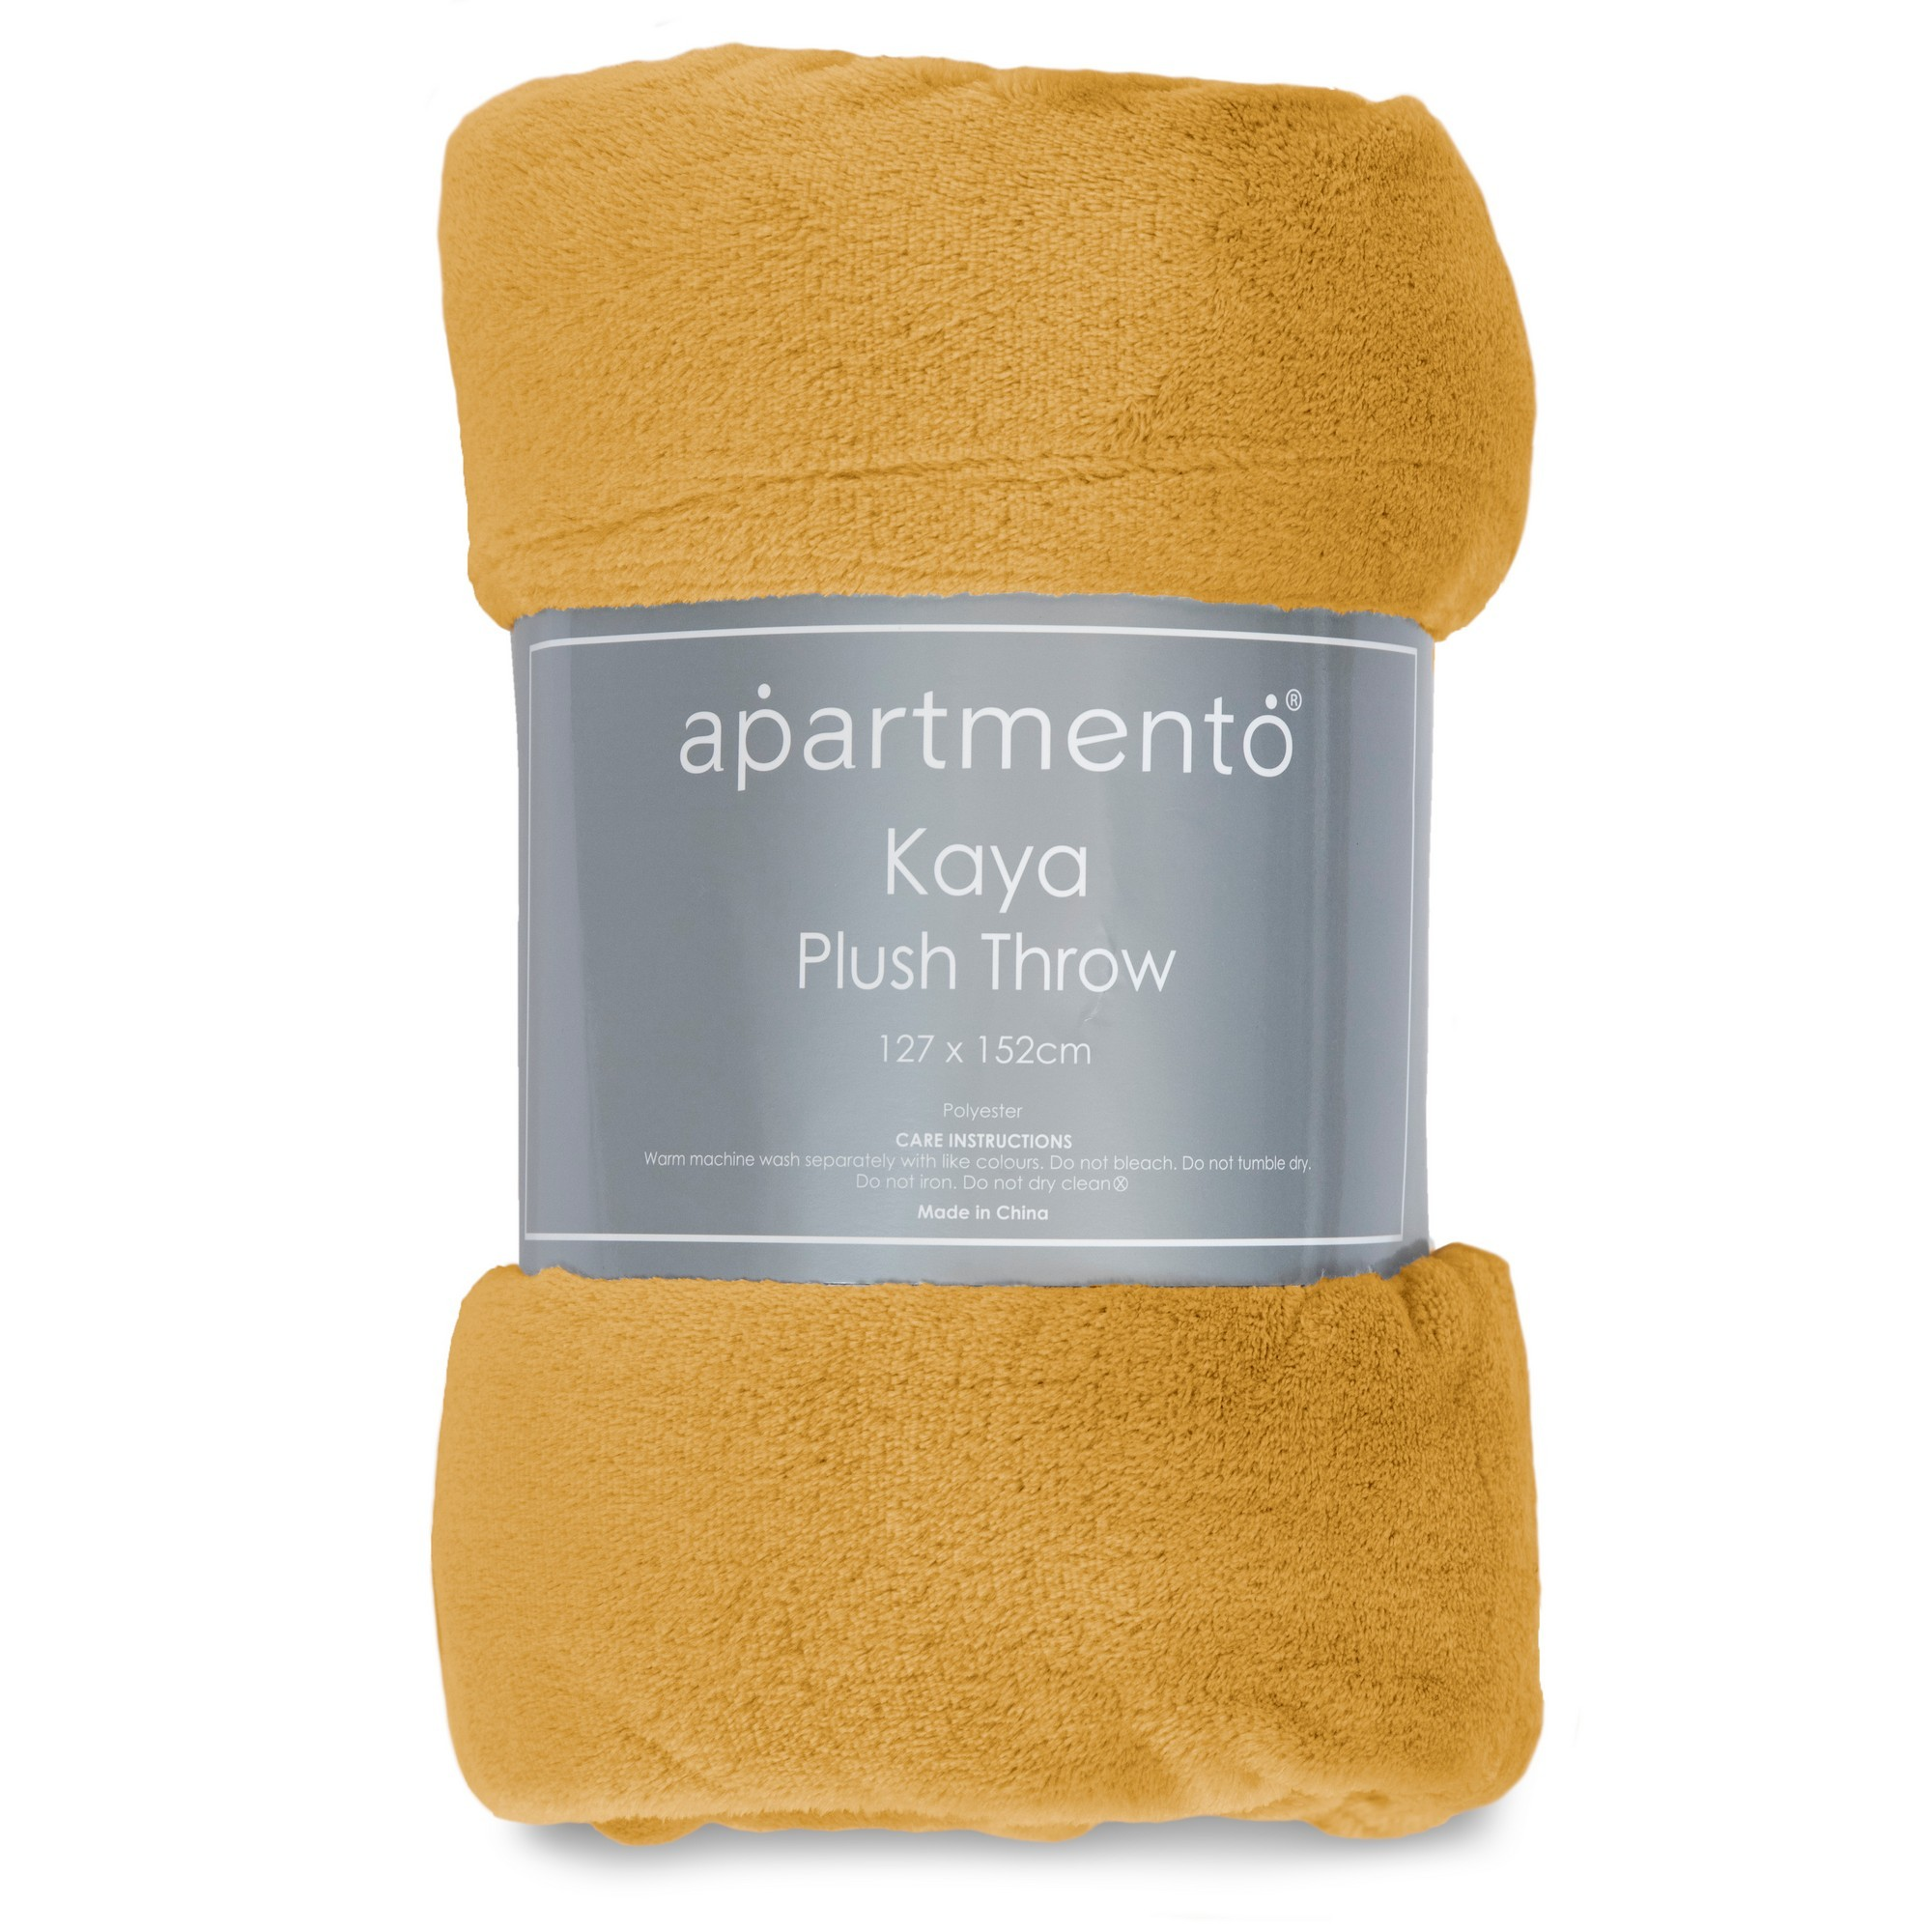 Apartmento Kaya Flannel Plush Throw, 127x152cm, Mustard